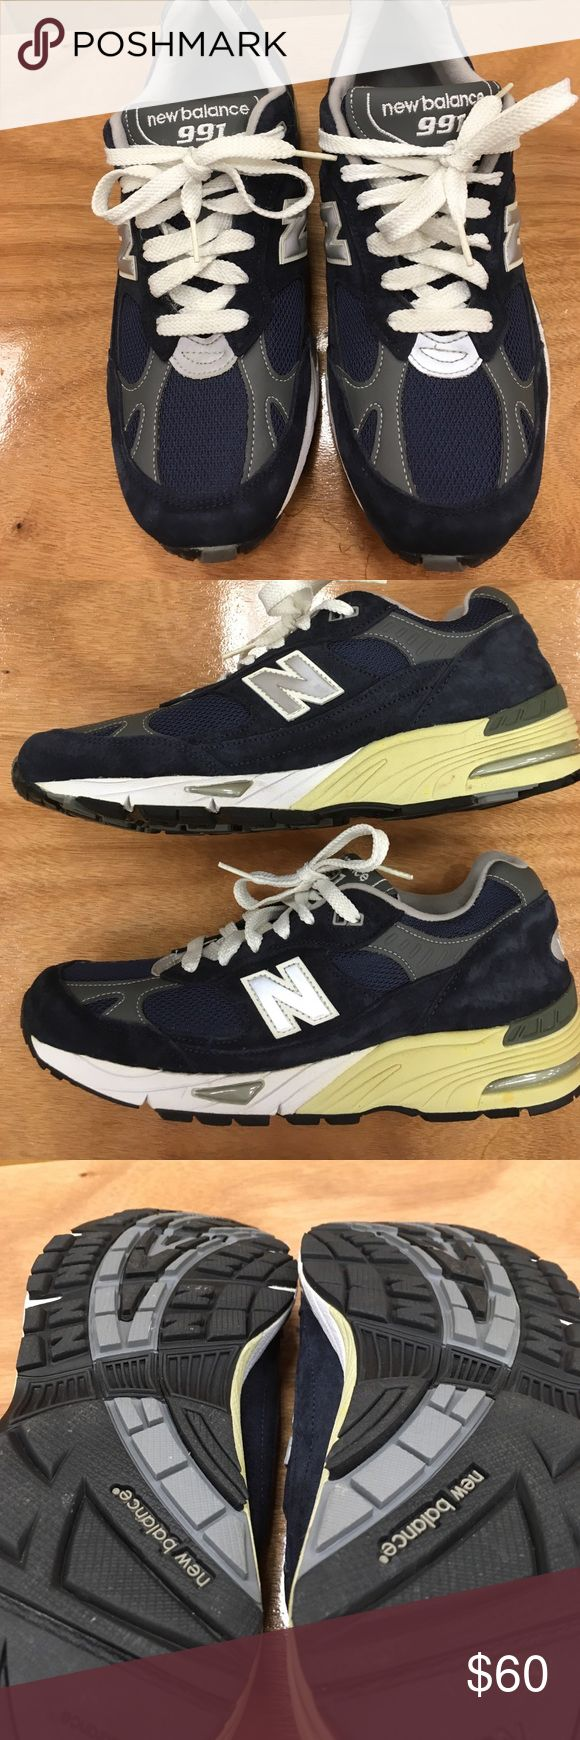 New Balance 991 men's running shoes SL-1 Fit. Size 8.5. Abzorb USA. Ndurance. Really nice soles, only worn a few times. New Balance Shoes Athletic Shoes